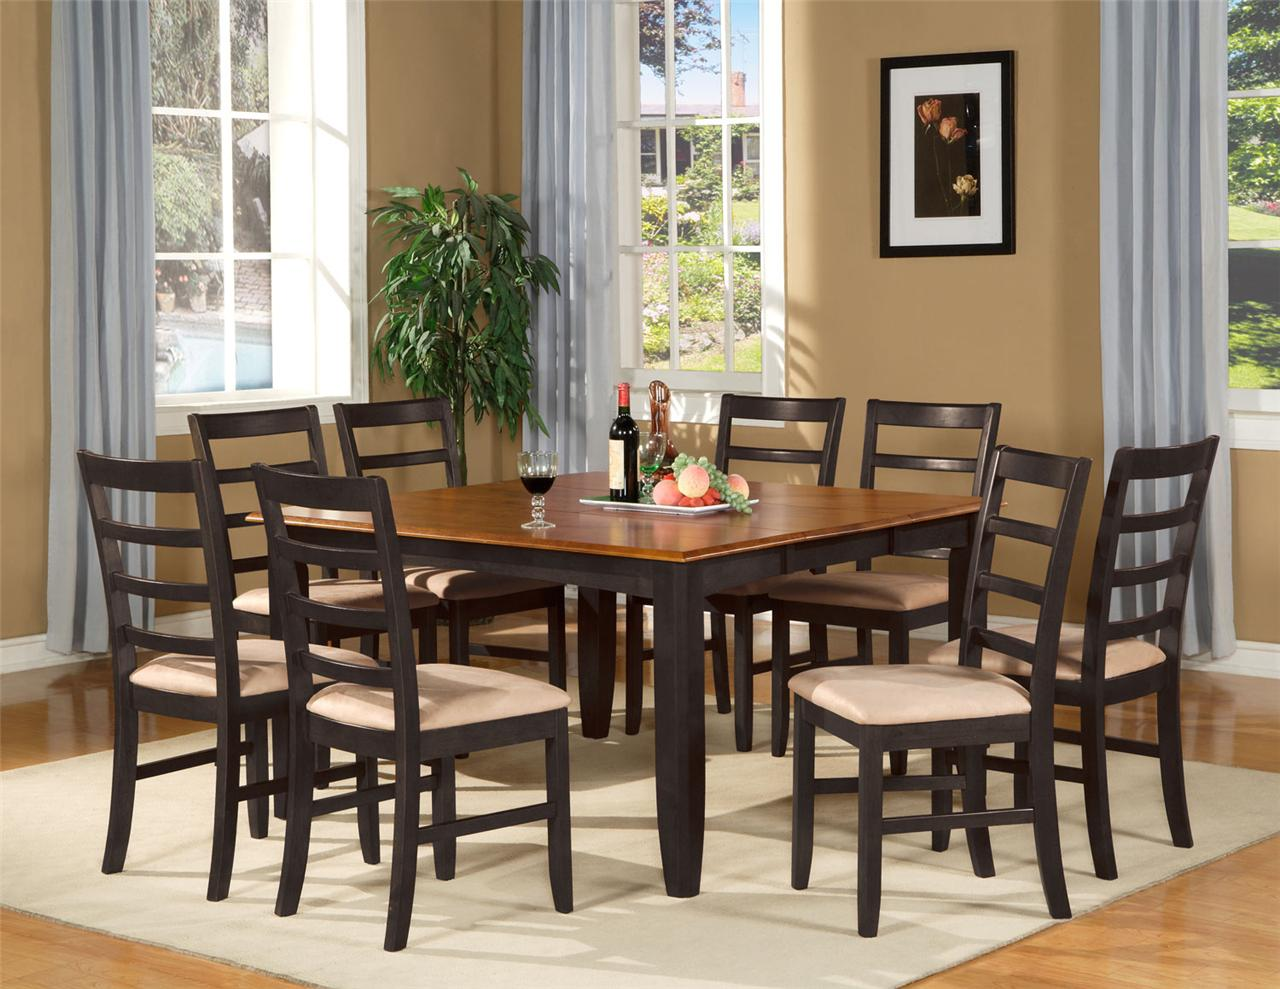 9 pc square dinette dining room table set and 8 chairs ebay - Pc dining room set ...